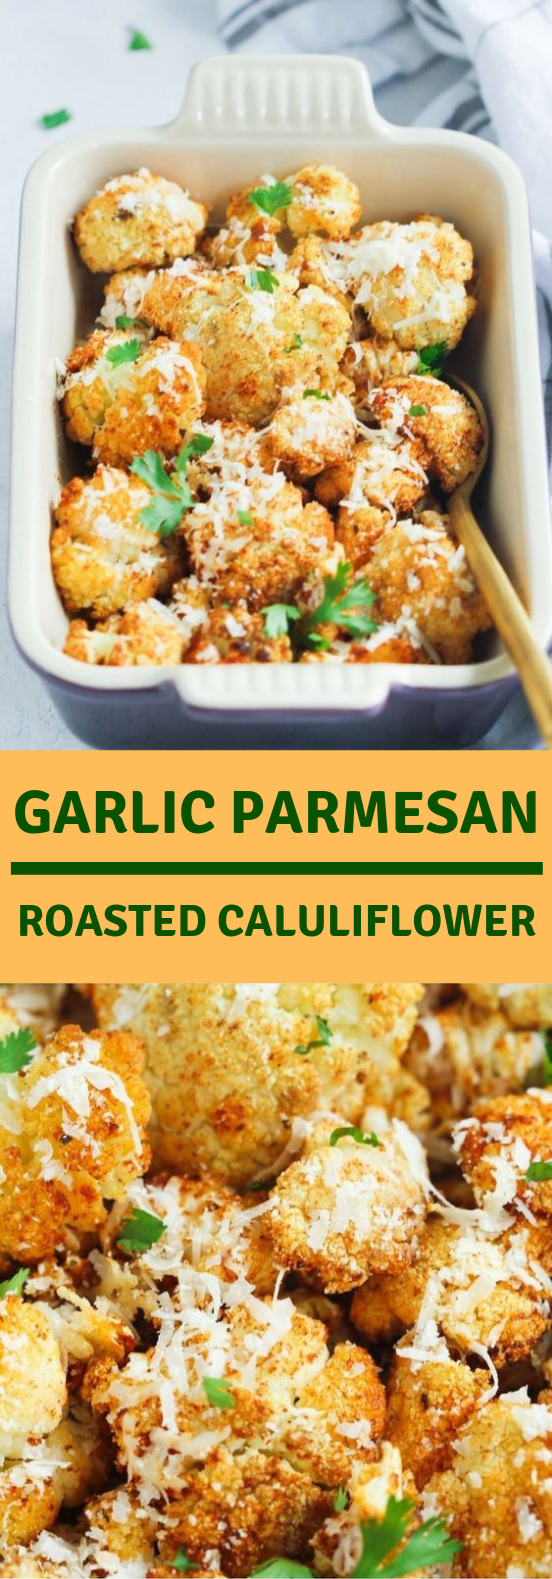 Garlic Parmesan Roasted Cauliflower #Vegetarian #Cauliflower